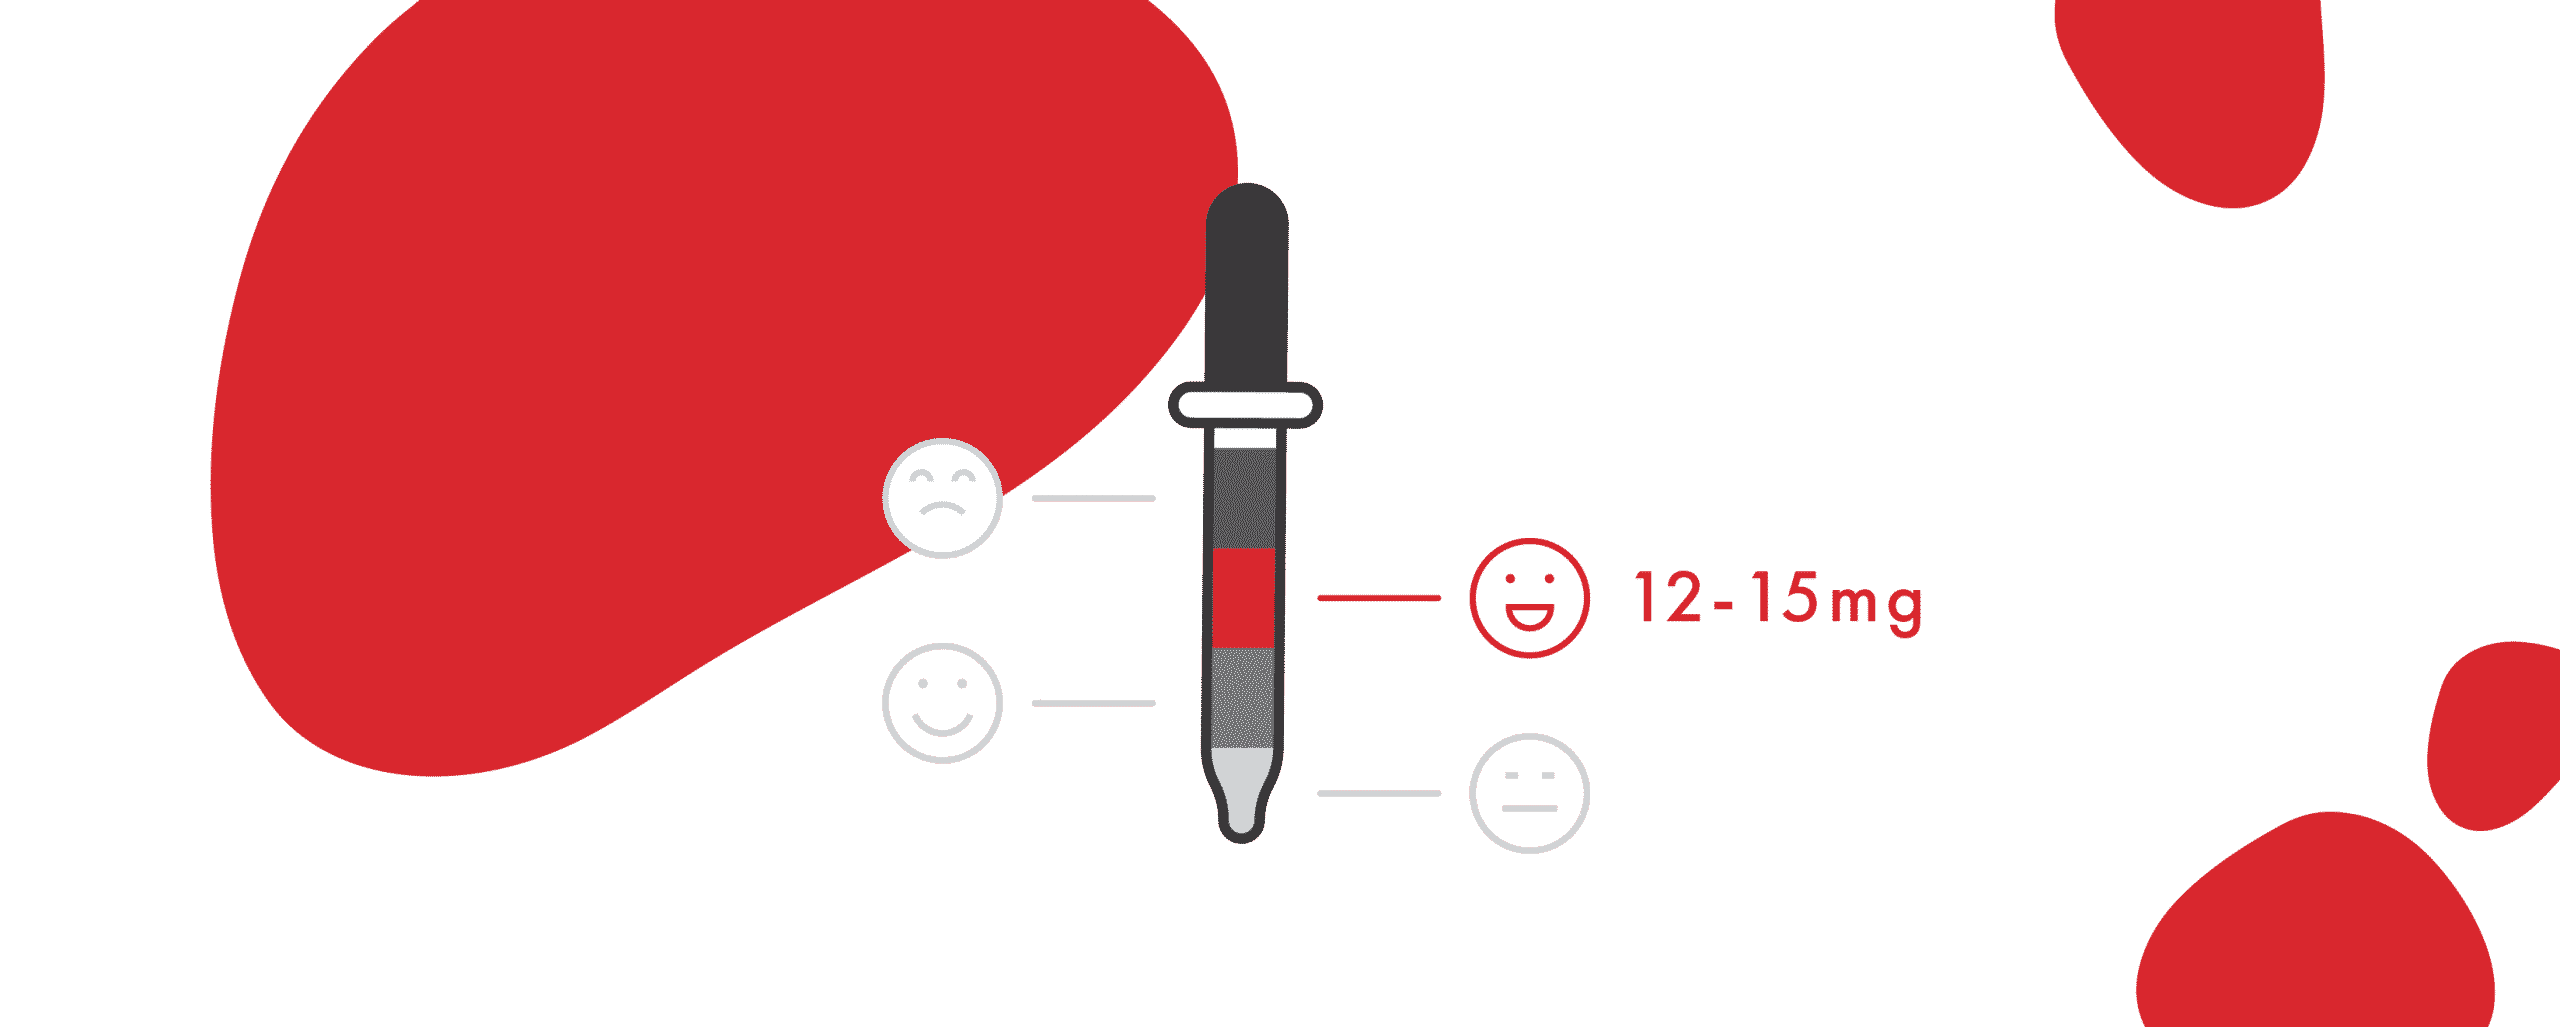 Illustration showing a pipette. Levels of oil inside corresponding to smiling faces, there's a highlight on the middle one that is a smiley face smiling, next to it says 12-15mg